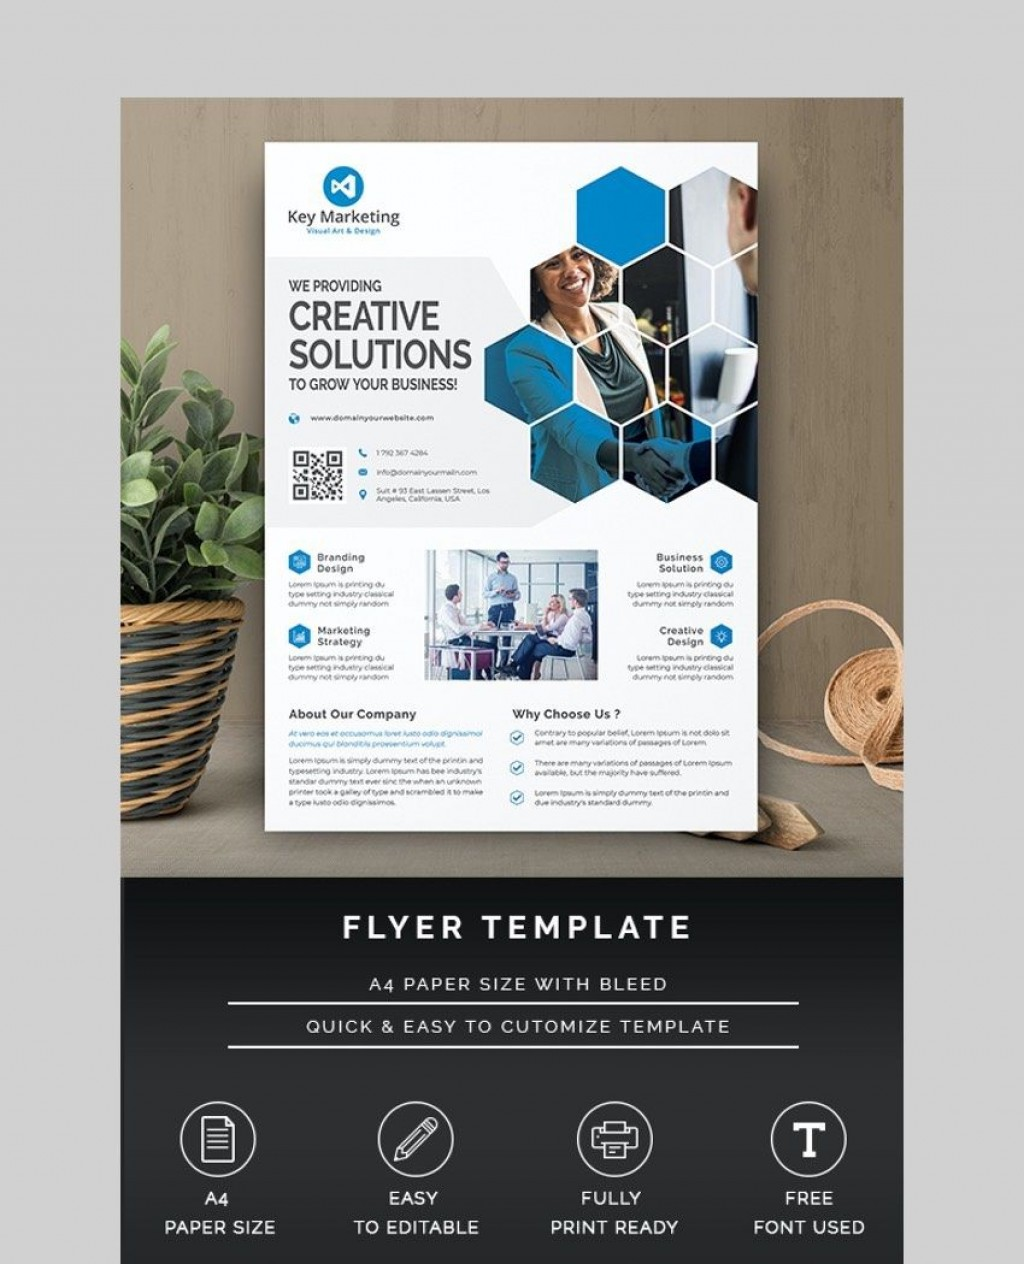 006 Remarkable In Design Flyer Template Sample  Templates Indesign Free For Mac EventLarge